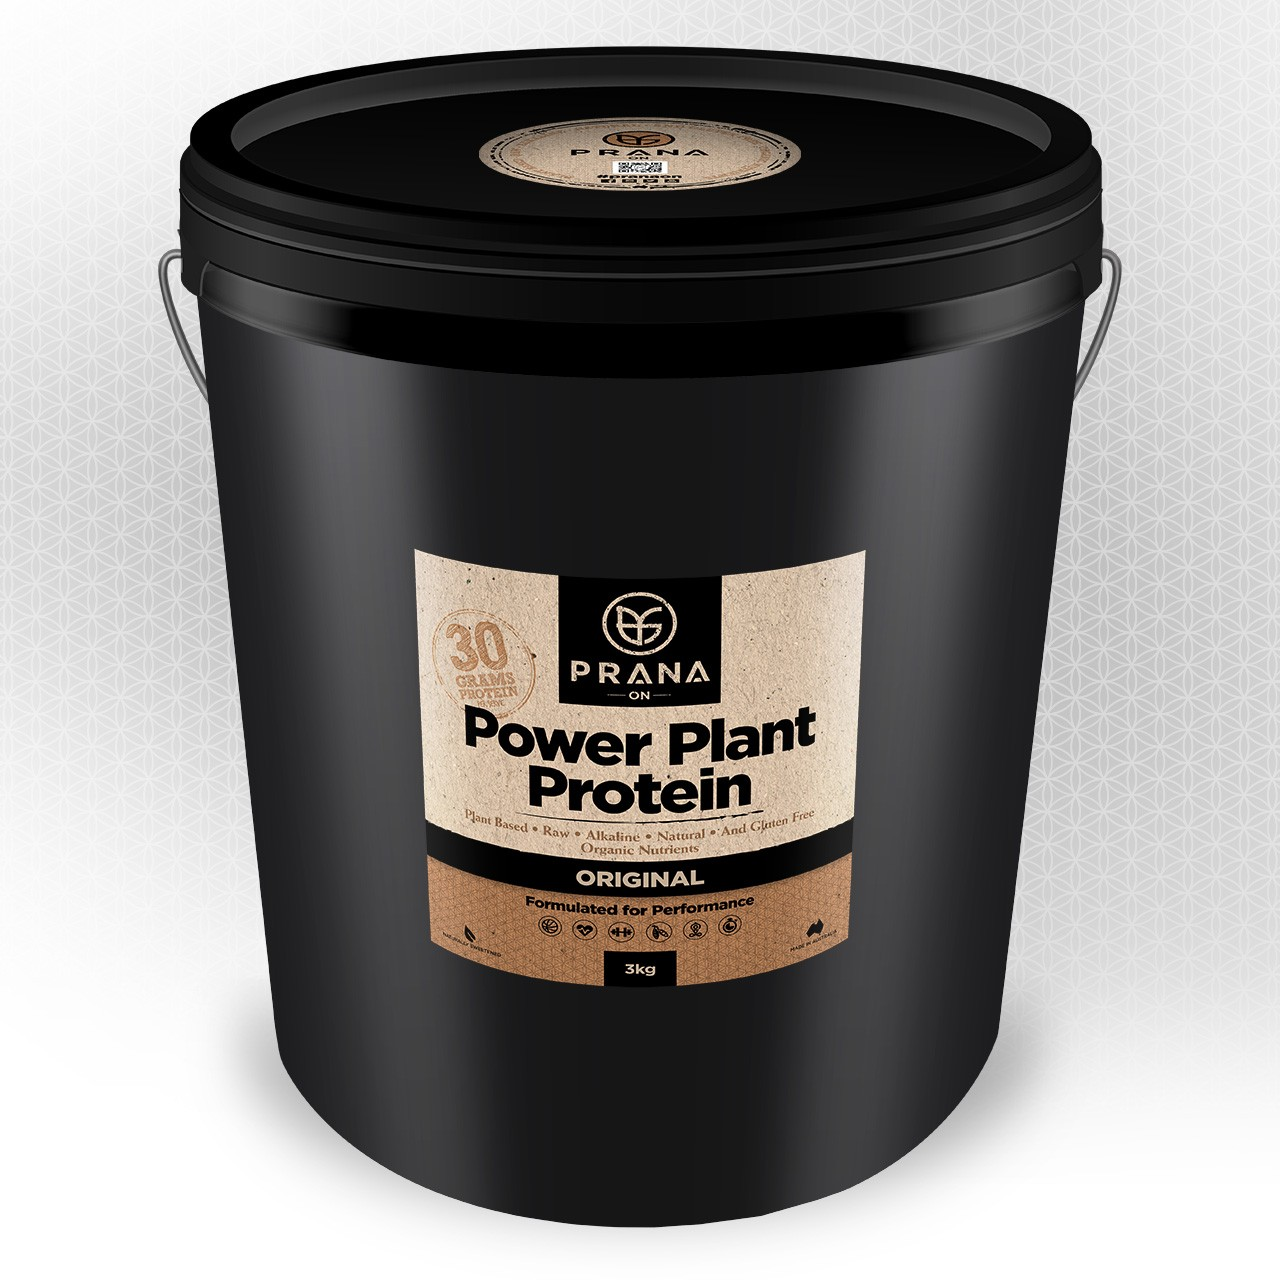 PRANA ON POWER PLANT PROTEIN 3KG